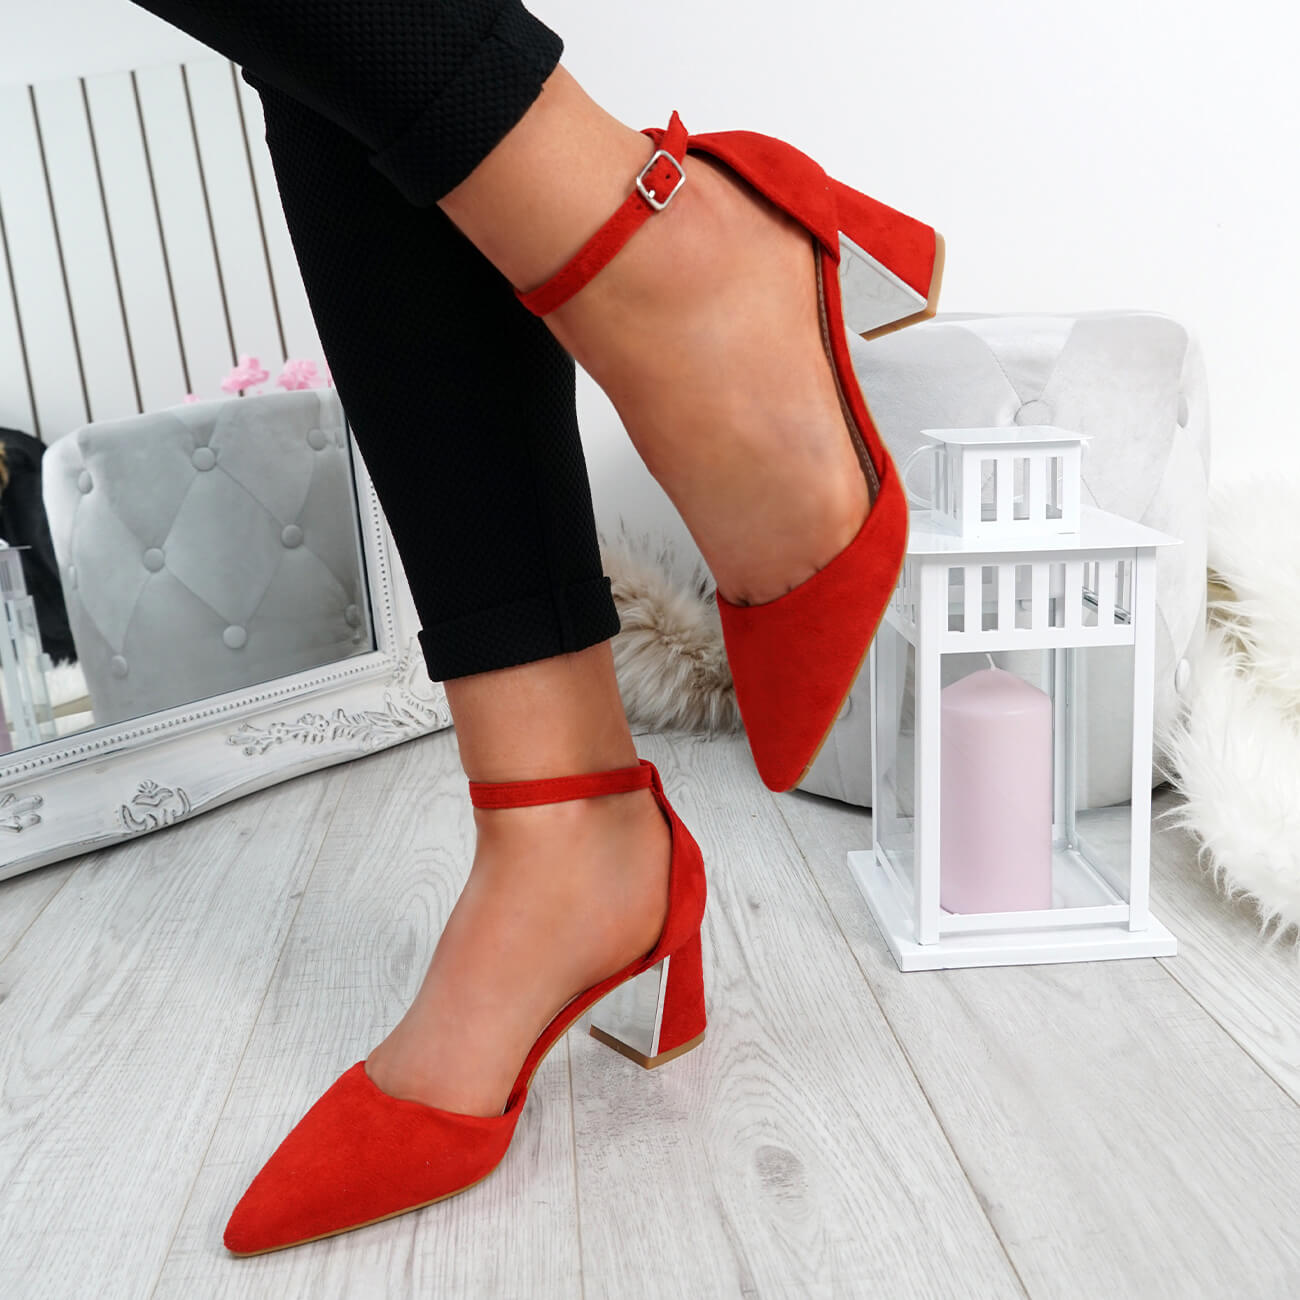 WOMENS-LADIES-ANKLE-STRAP-POINTED-HIGH-BLOCK-HEEL-PUMPS-COURT-SHOES-SIZE thumbnail 19